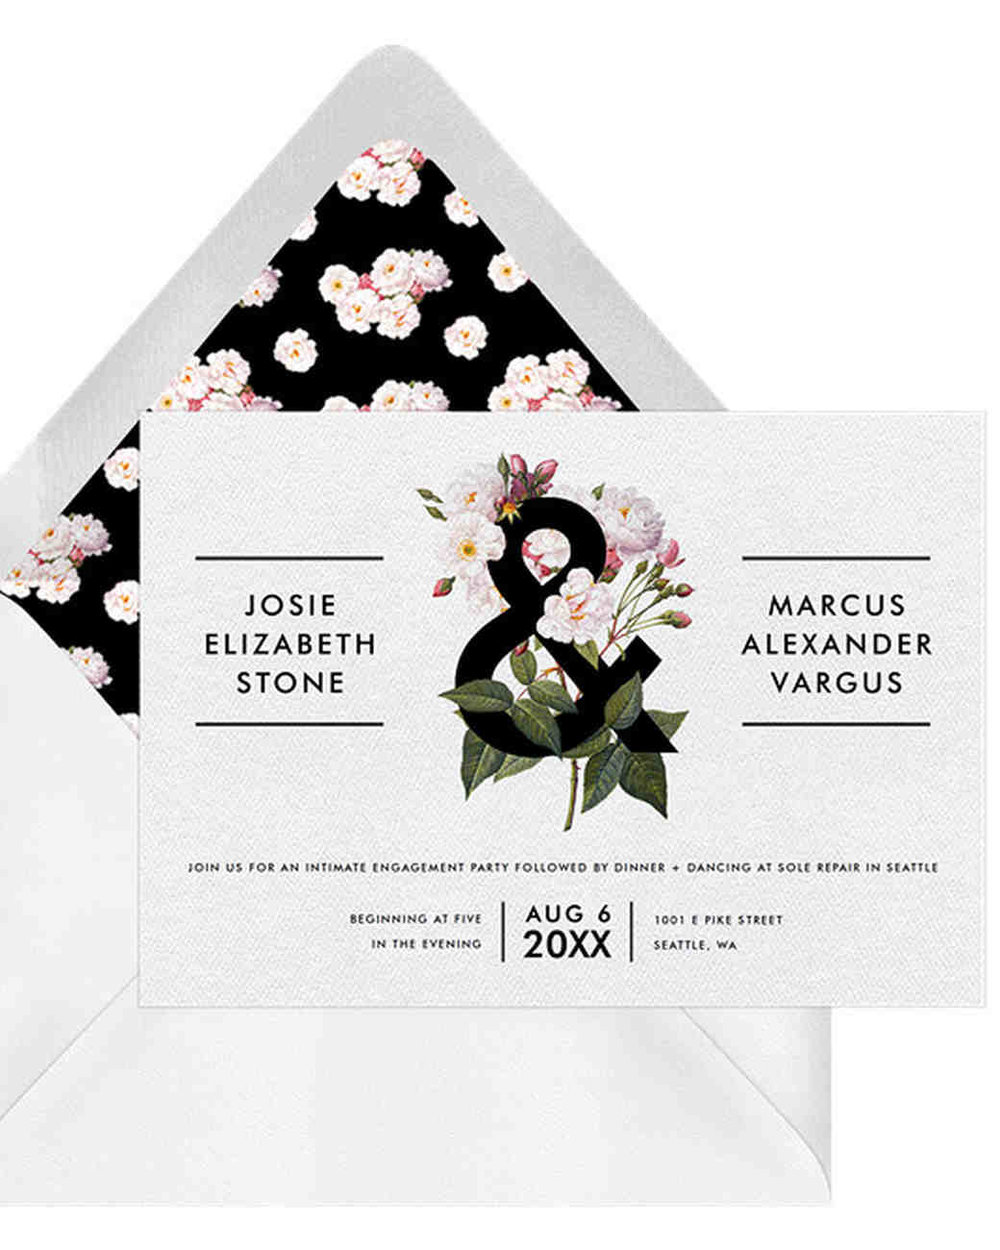 https://www.marthastewartweddings.com/600430/paperless-engagement-party-invitations